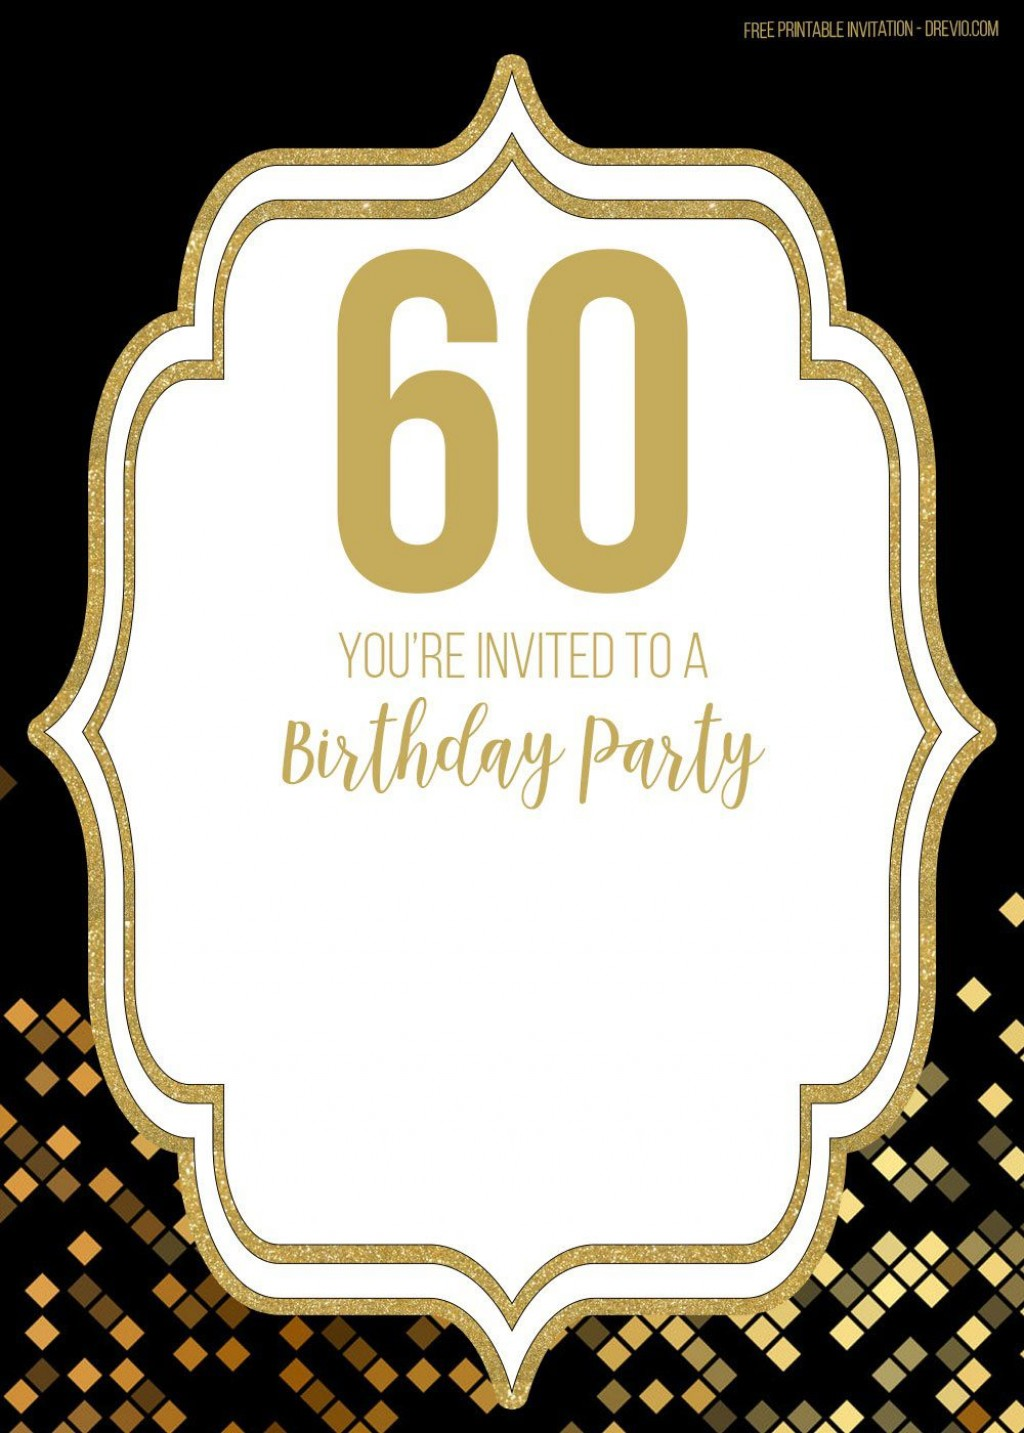 009 Amazing Free 60th Birthday Invitation Template High Resolution  Templates Surprise Download For Word PartyLarge